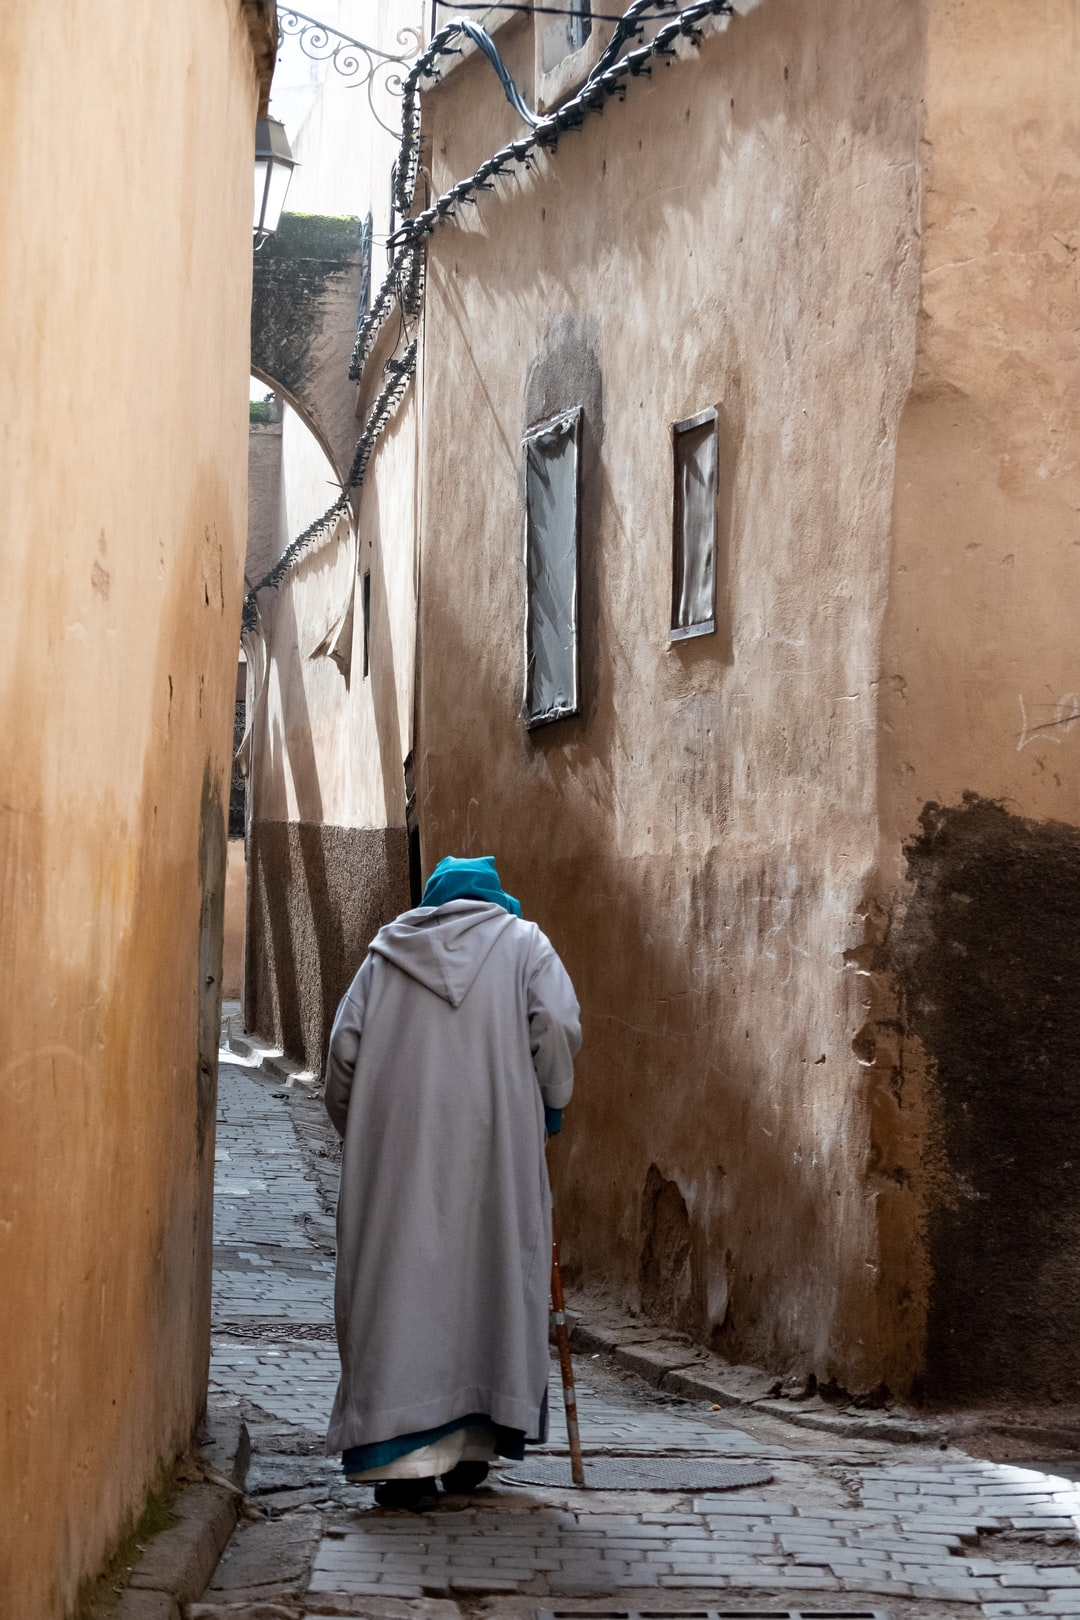 Streets of Fez, Morocco.